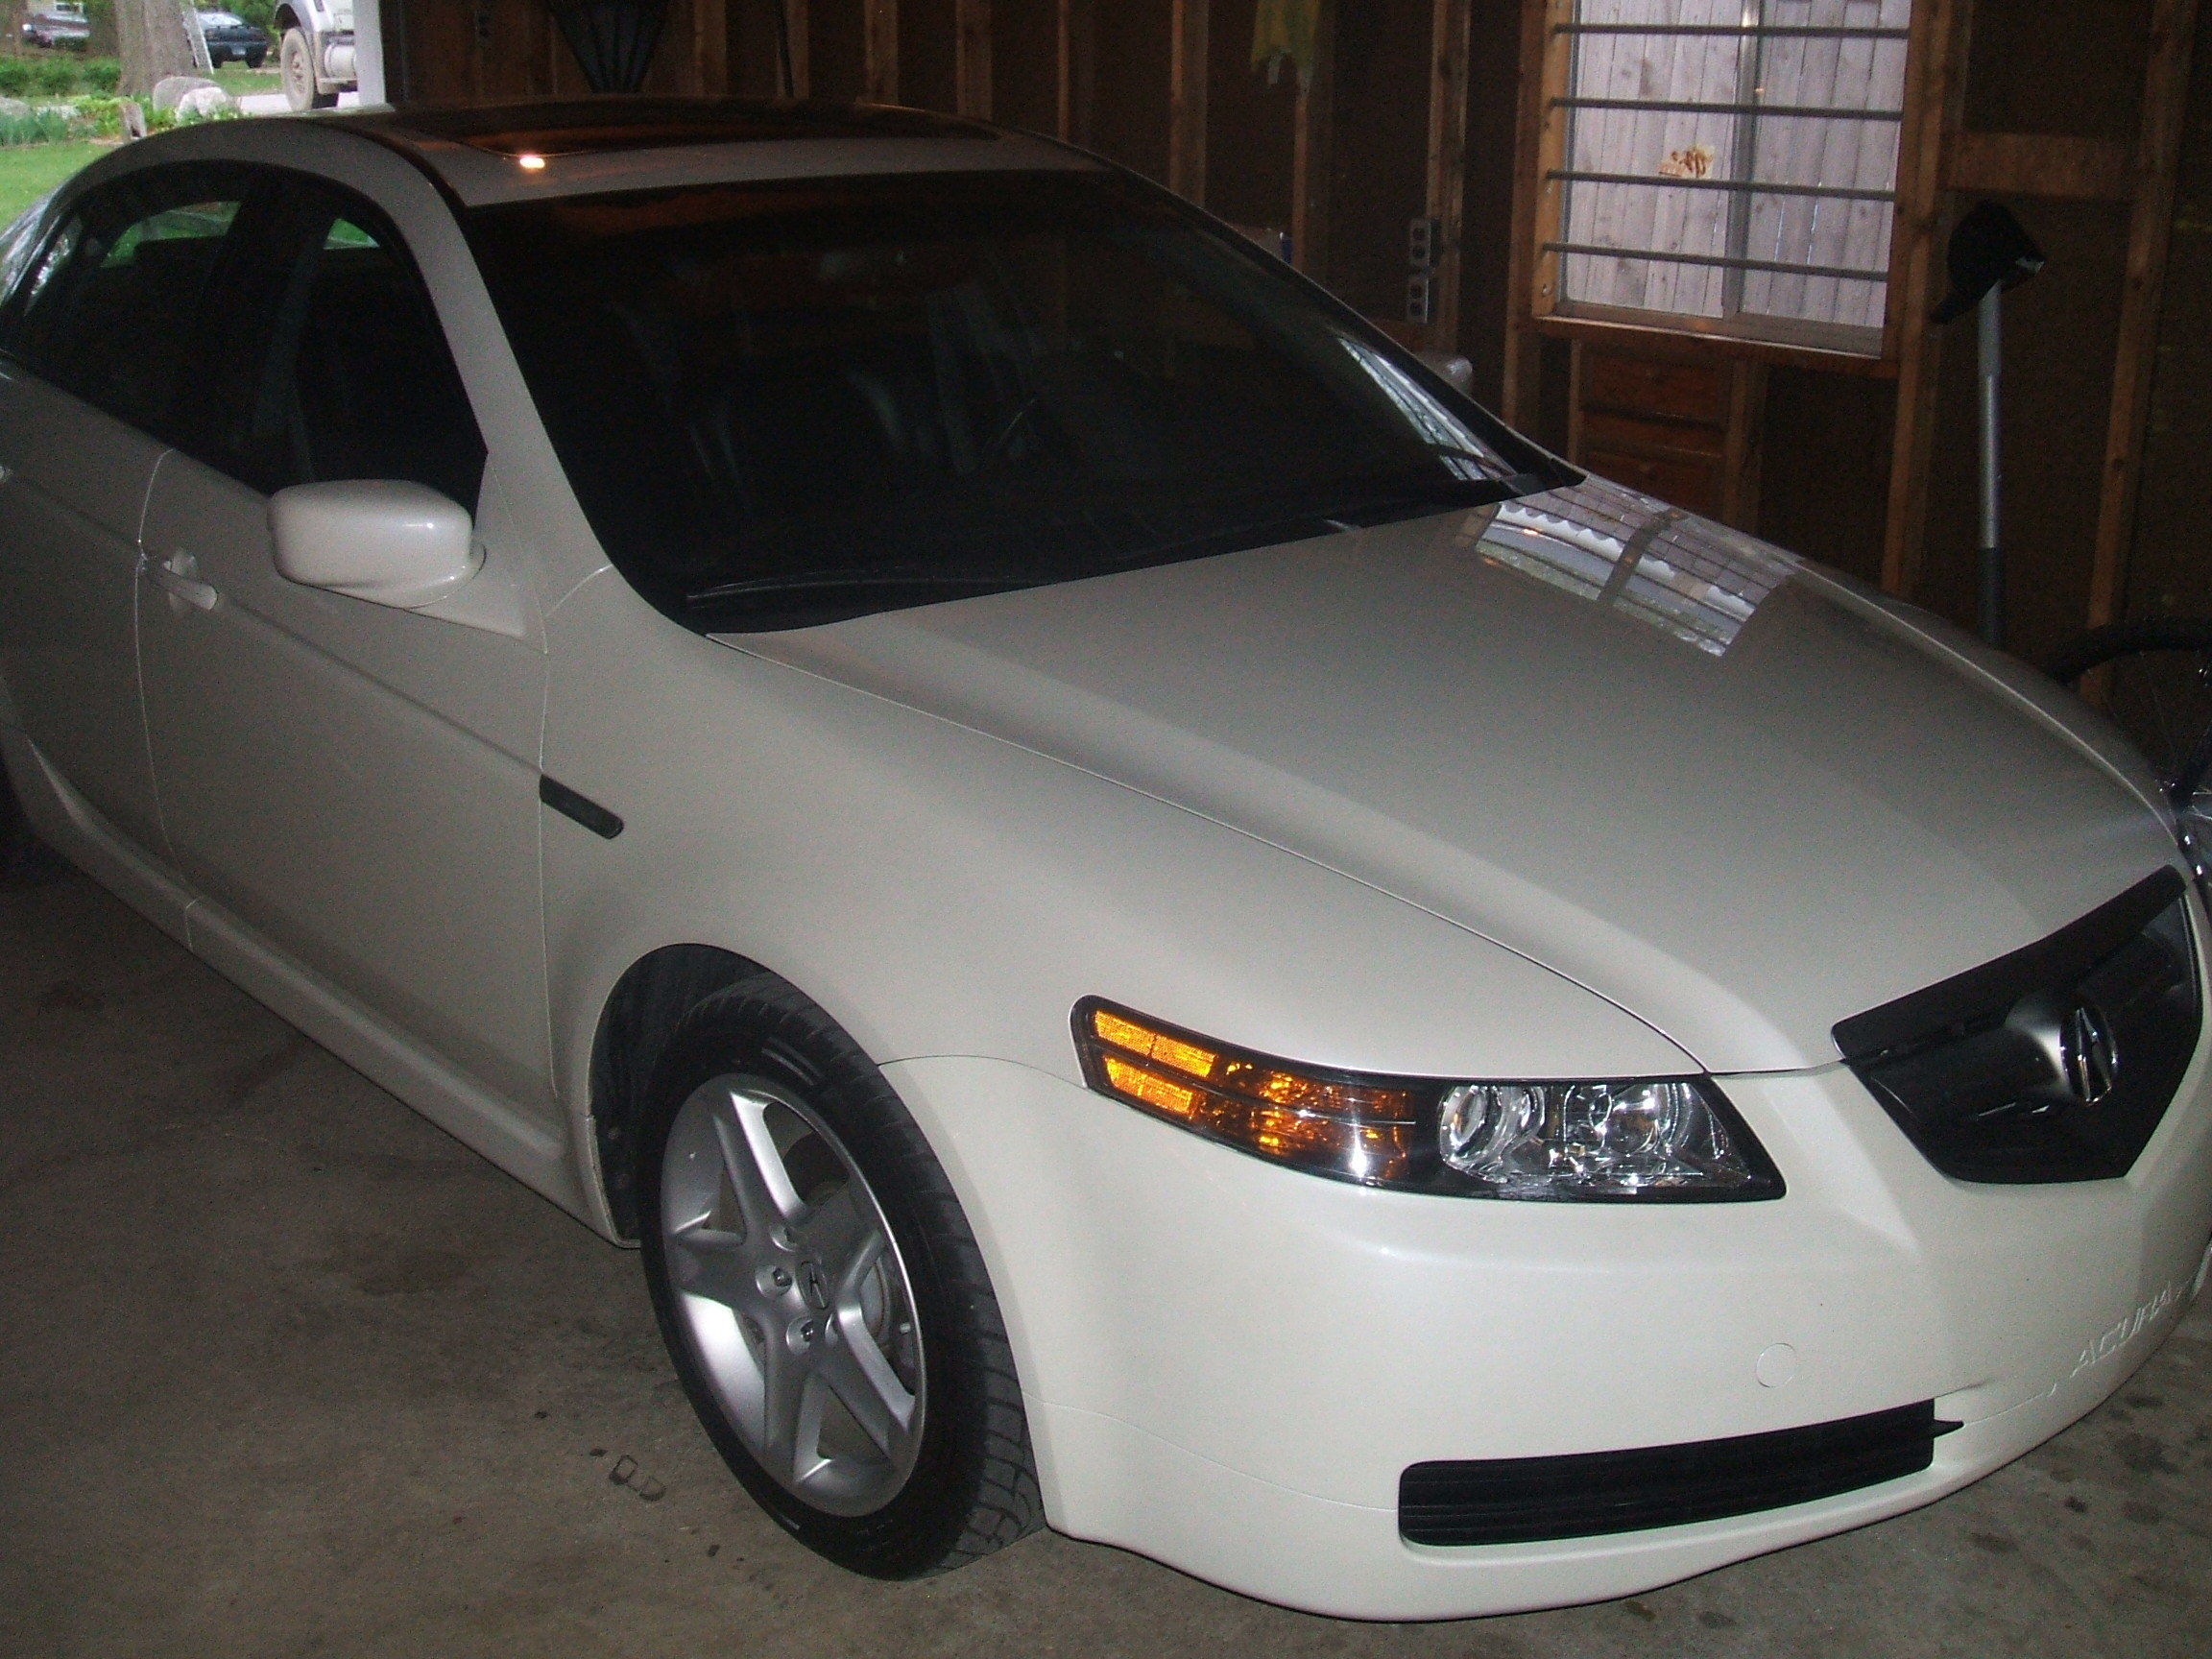 javiteggy97 39 s 2006 acura tl in indianapolis in. Black Bedroom Furniture Sets. Home Design Ideas